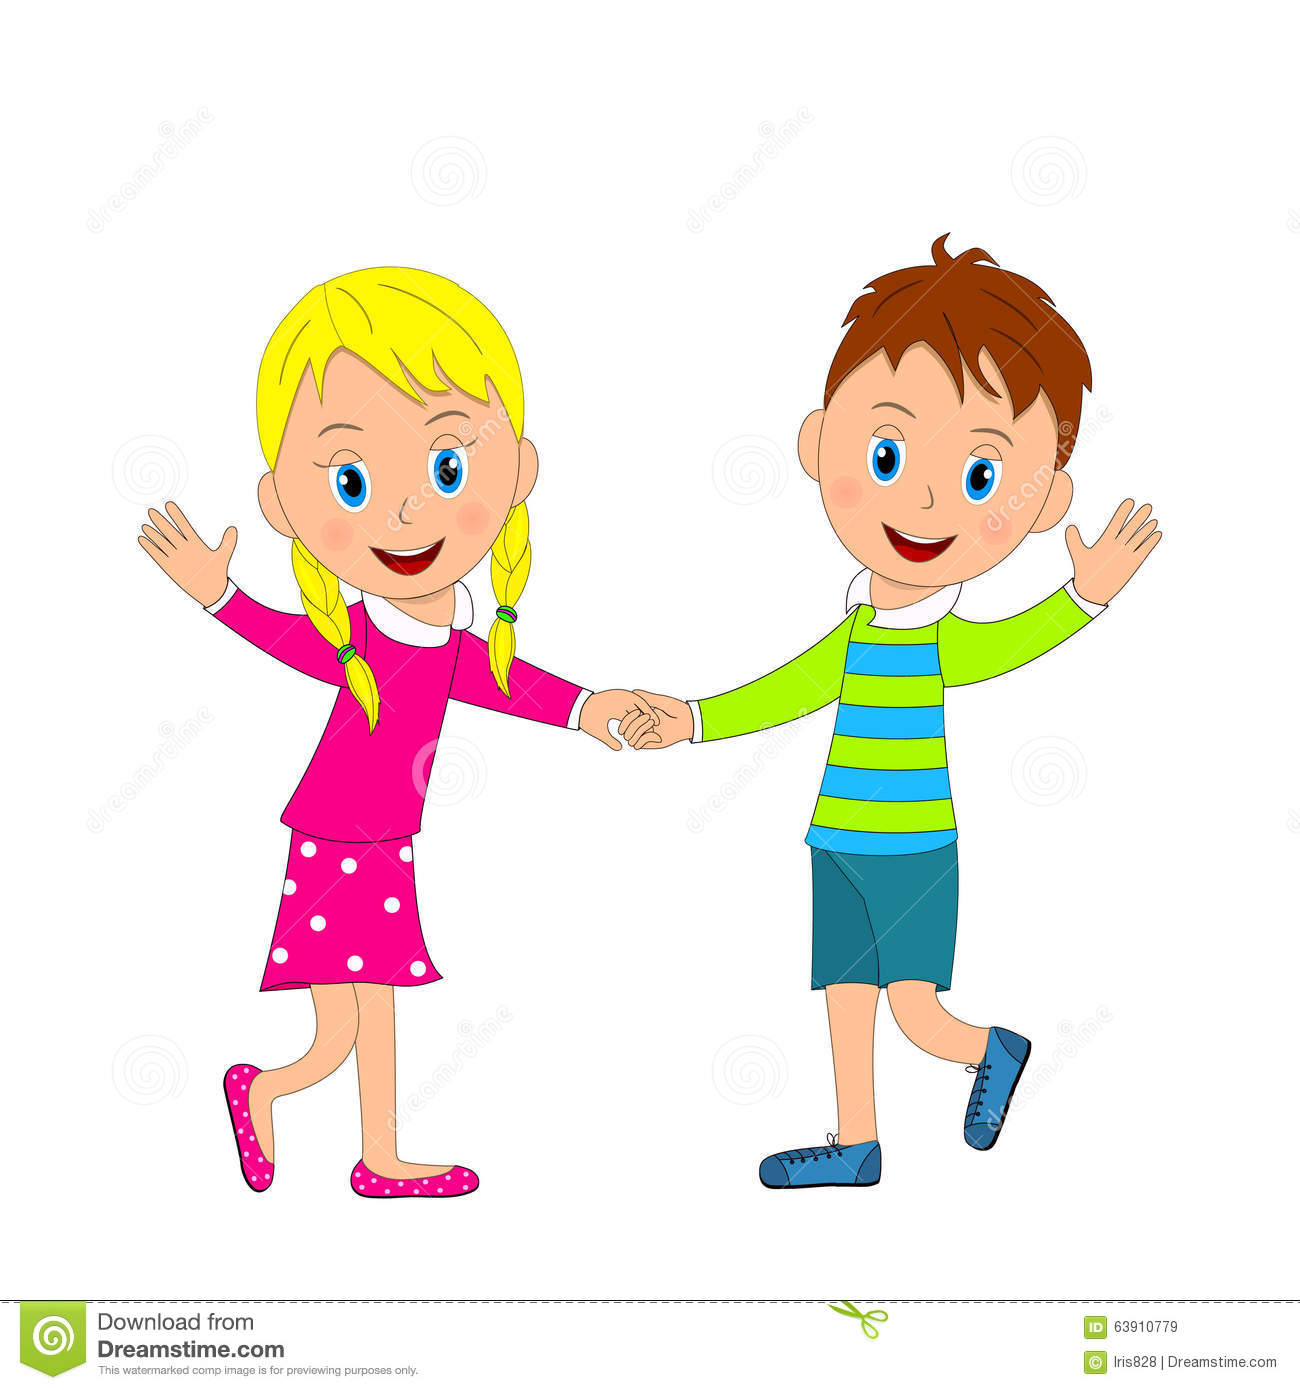 cute boy and girl smiling holding hands and waving stock vector rh dreamstime com Sample Boy and Girl Clip Art Holding Hands Prince and Princess Holding Hands Clip Art